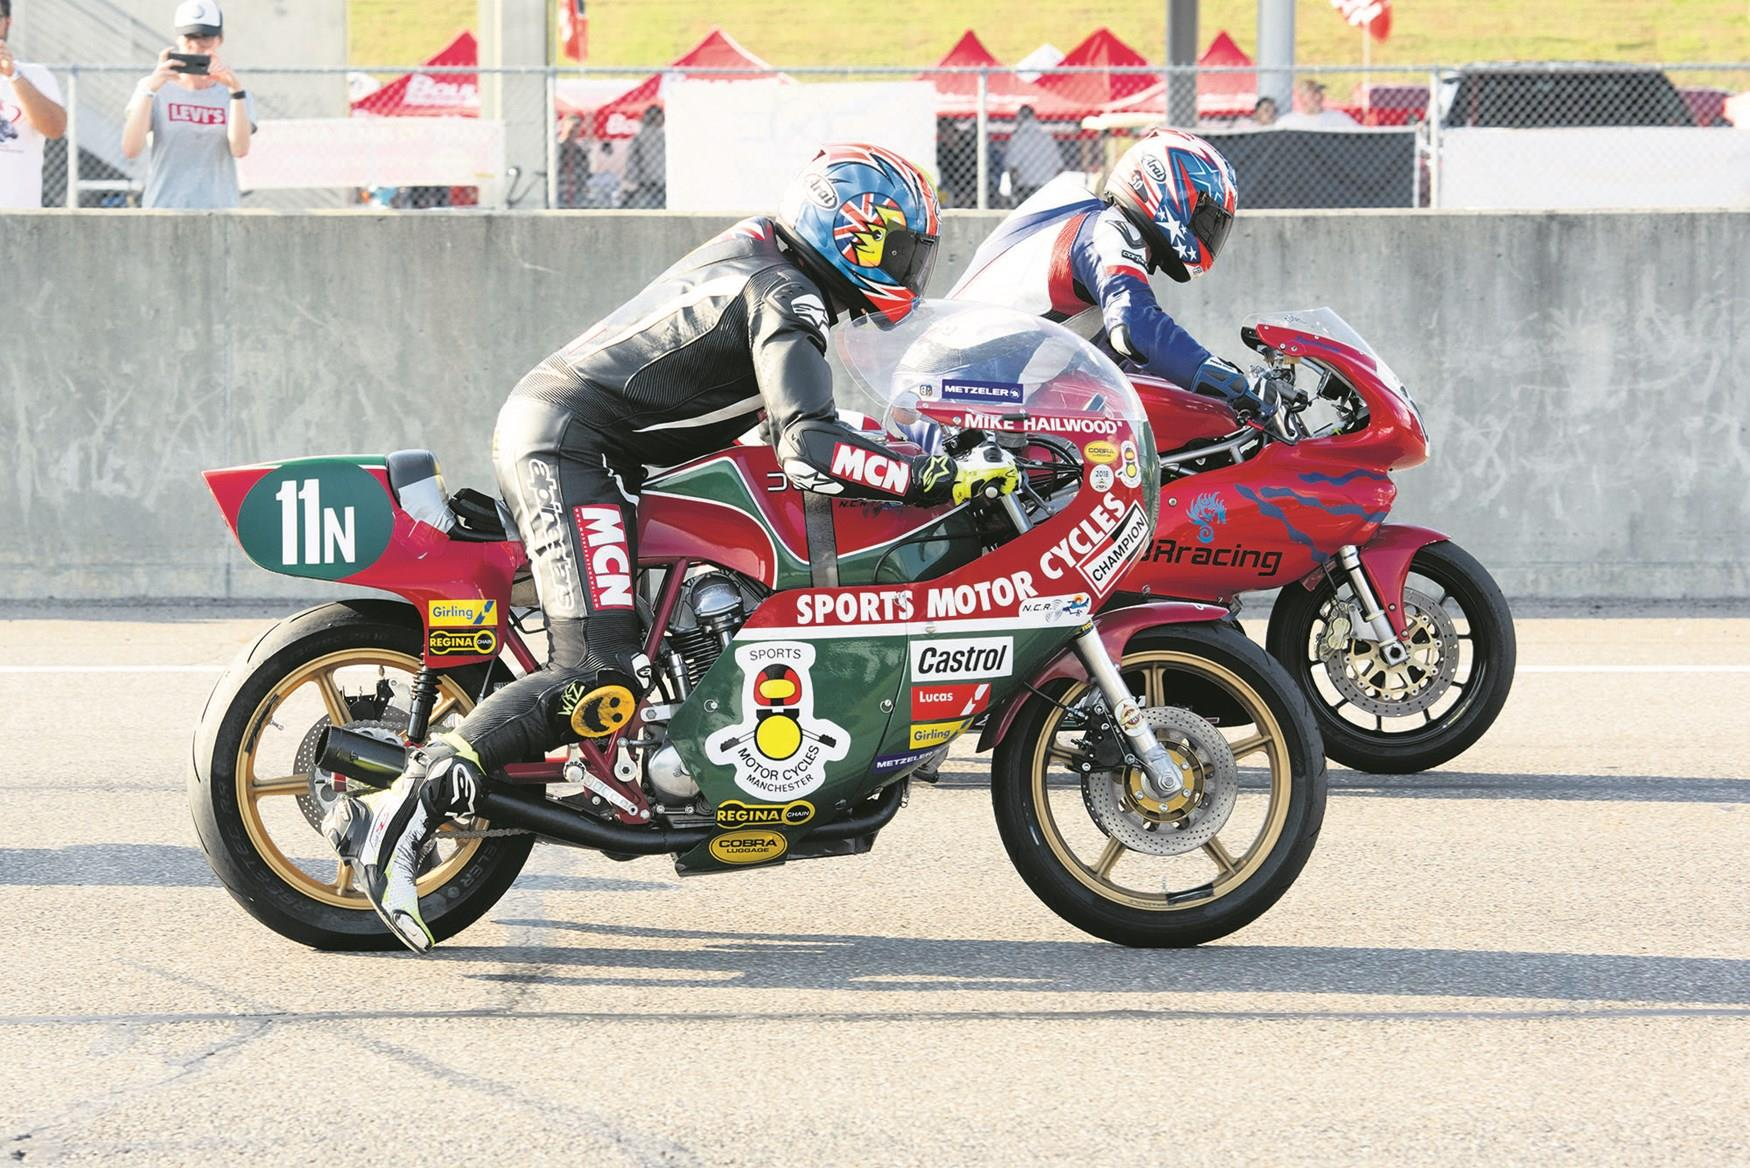 MCN's Neeves readies himself on the V2H